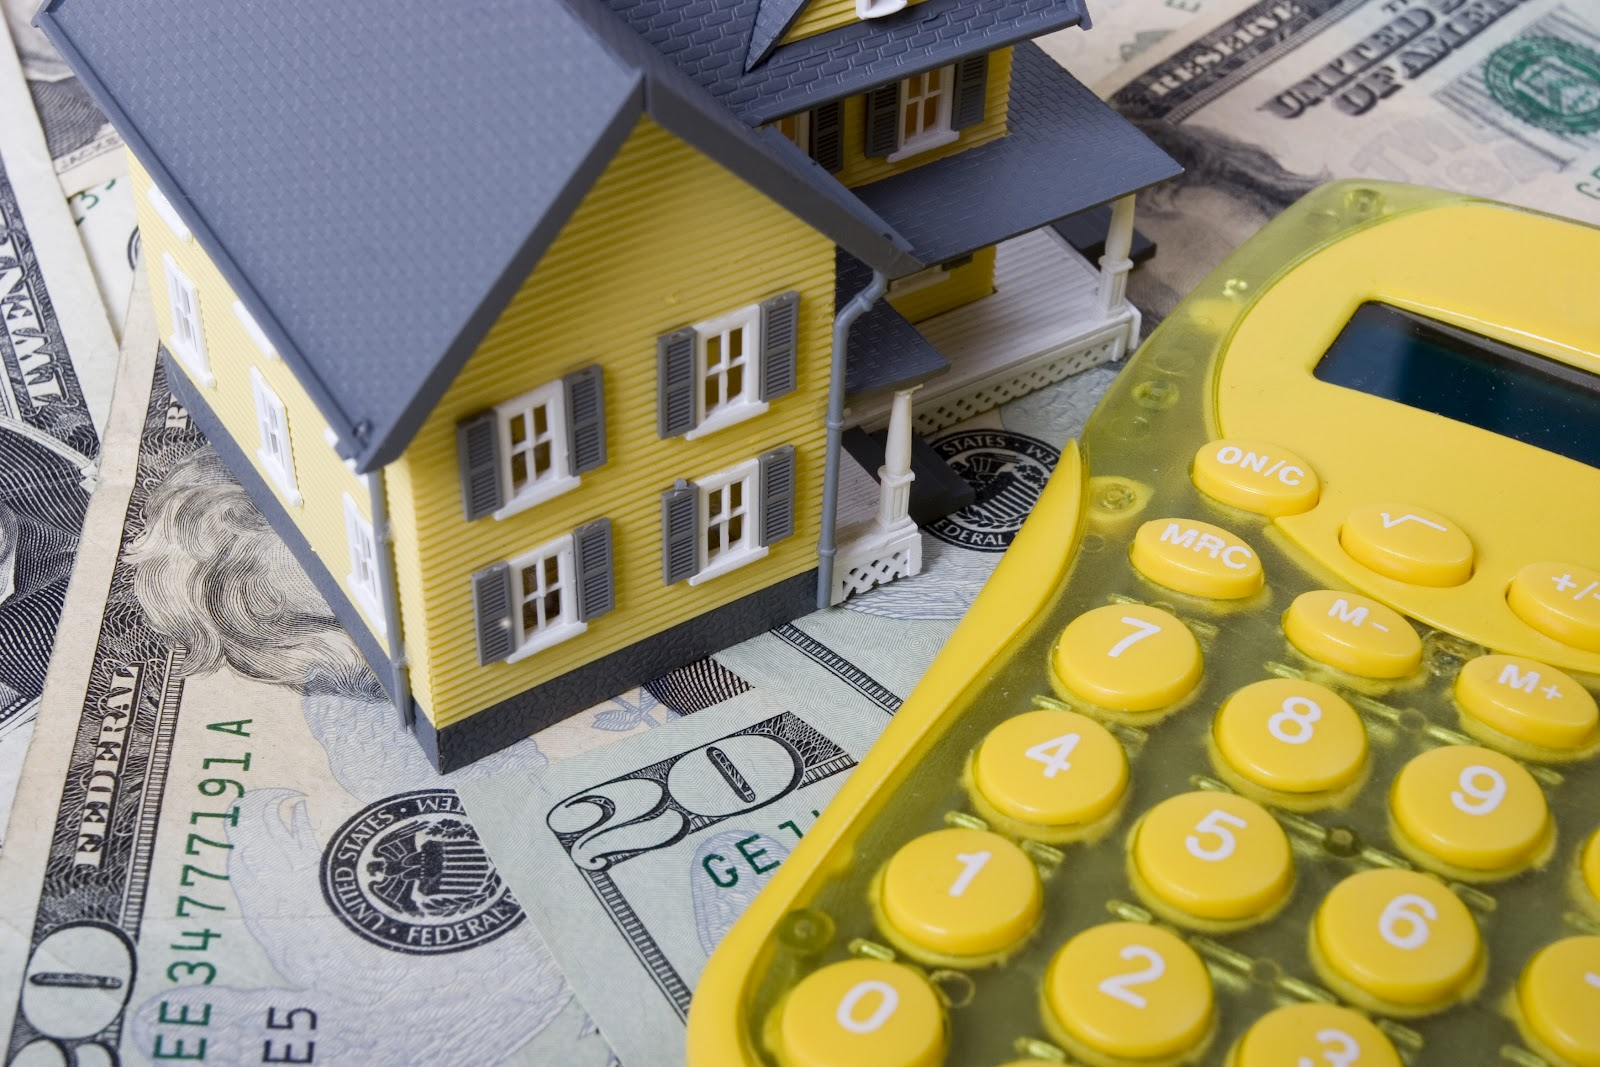 iStock_000002303404Large - House on money with calc.jpg